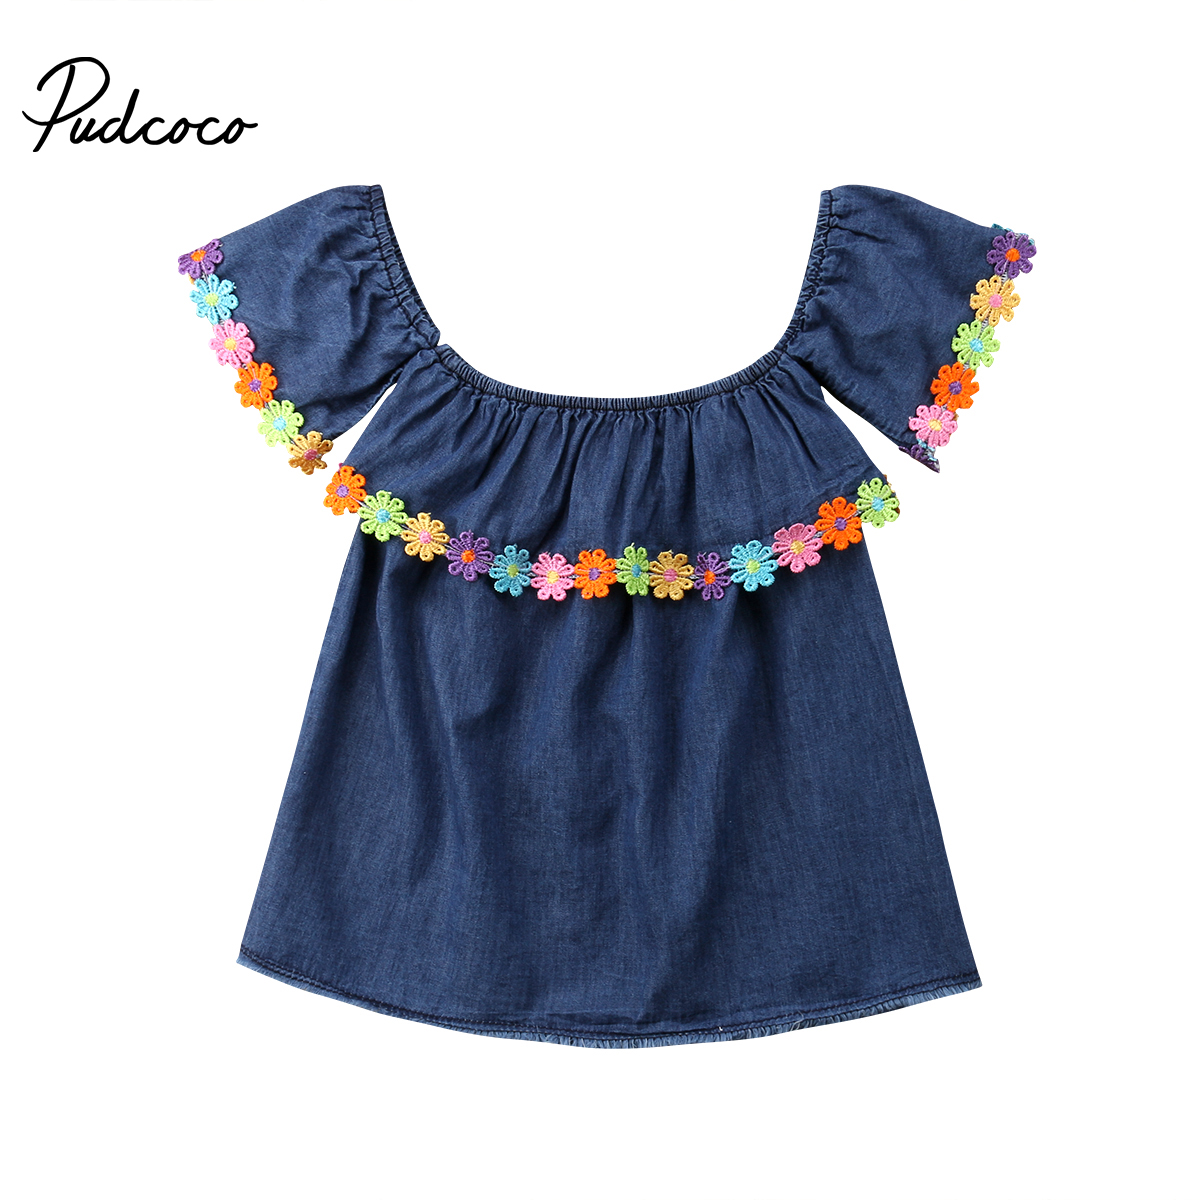 Pudcoco 2018 Faddish Brief Pure Baby Girl Dess Denim Blue Floral Rainbow Appliques Ruffle Sundress Chlid Clothing Outfits 1-6T ...